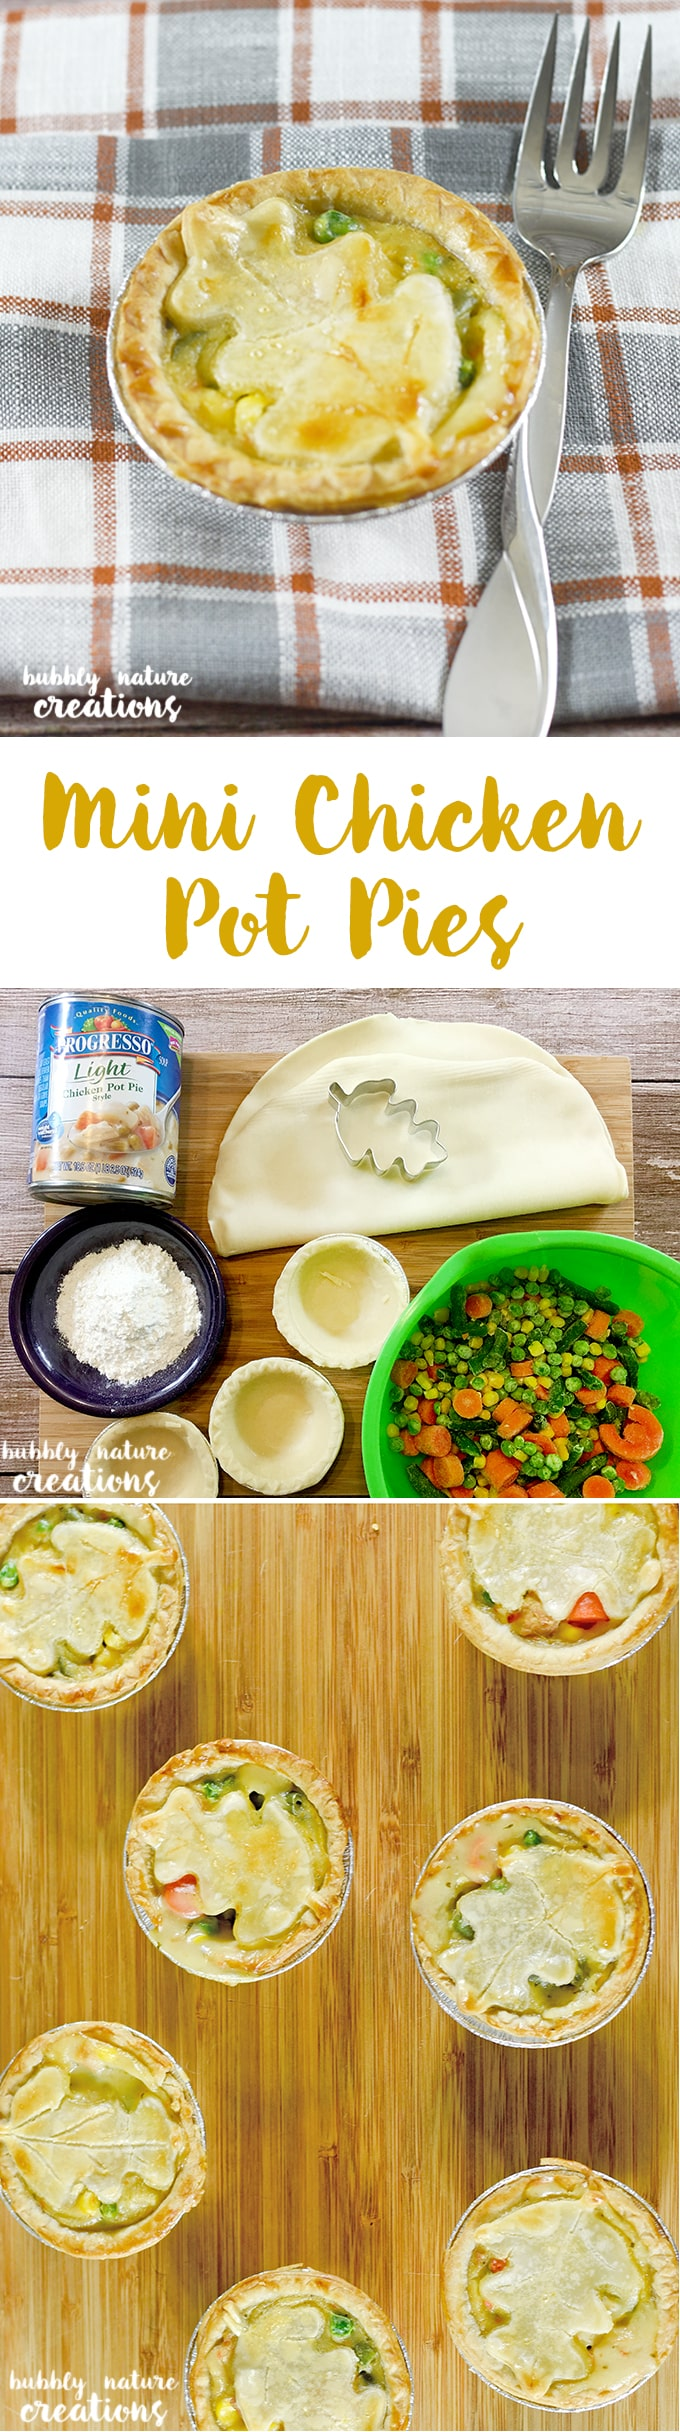 Mini Chicken Pot Pies! These cute little pies are made with just a few ingredients and are perfect as an appetizer as well as a main dish! I love pot pies!